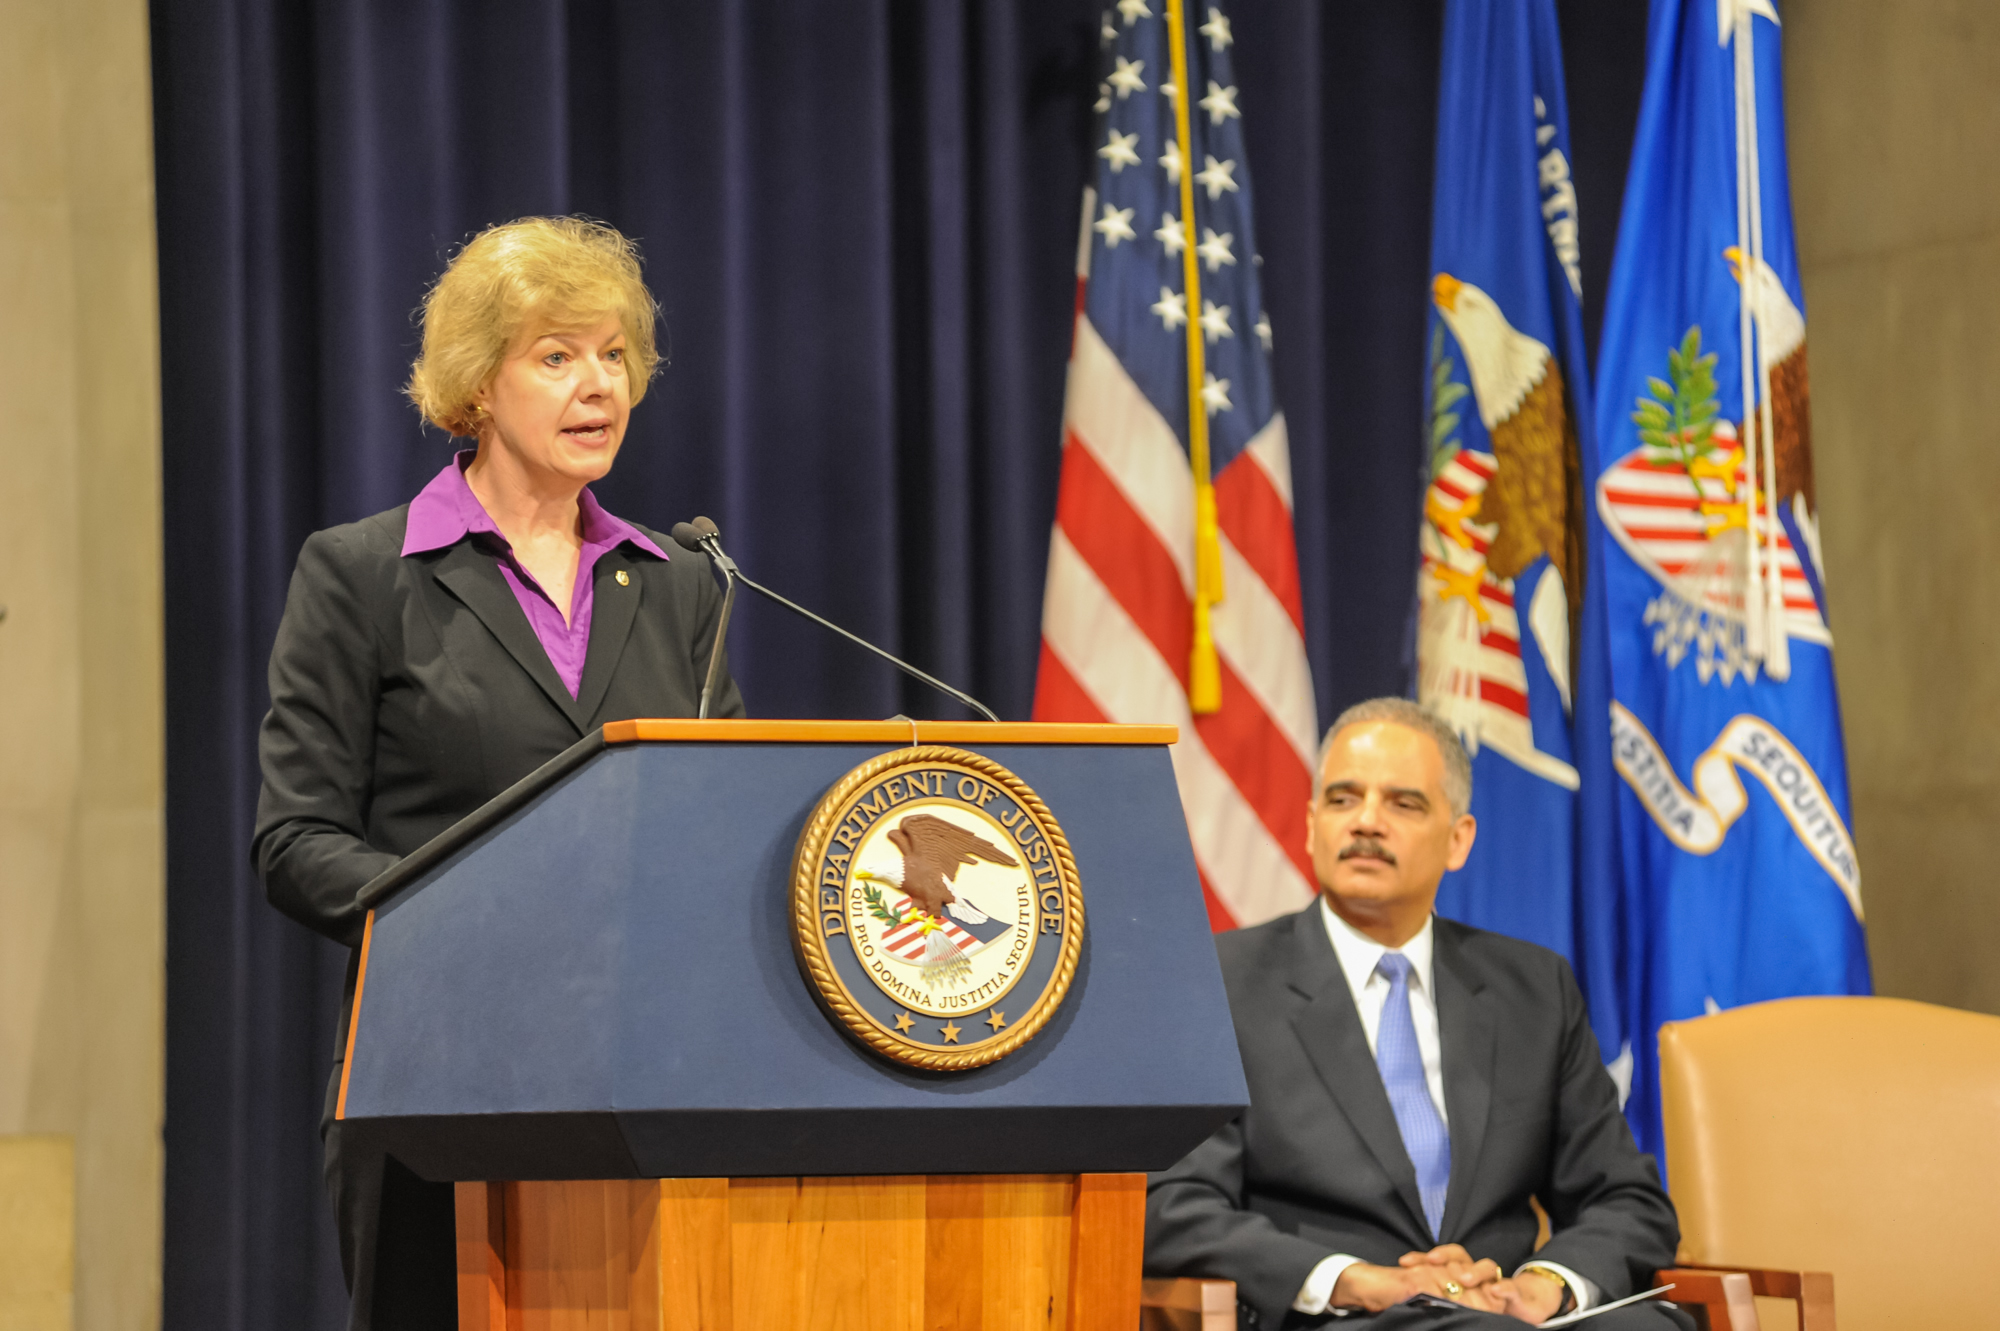 US Senator Tammy Baldwin from Wisconsin speaking at a US Department of Justice event.